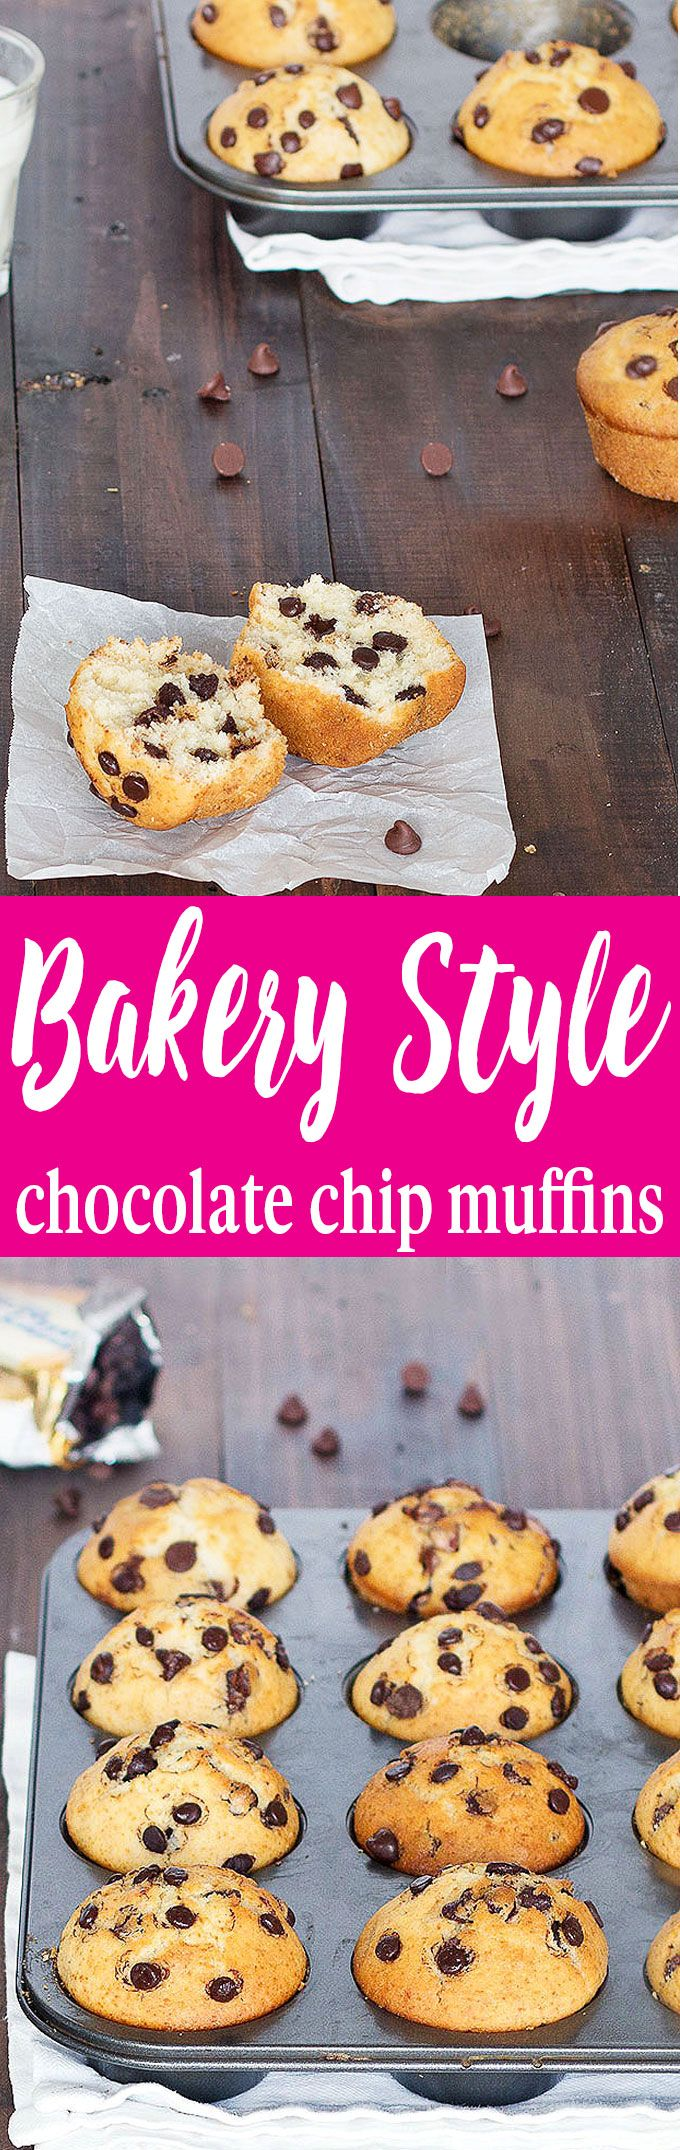 Bakery Style Chocolate Chip Muffins   Recipe   Best ...